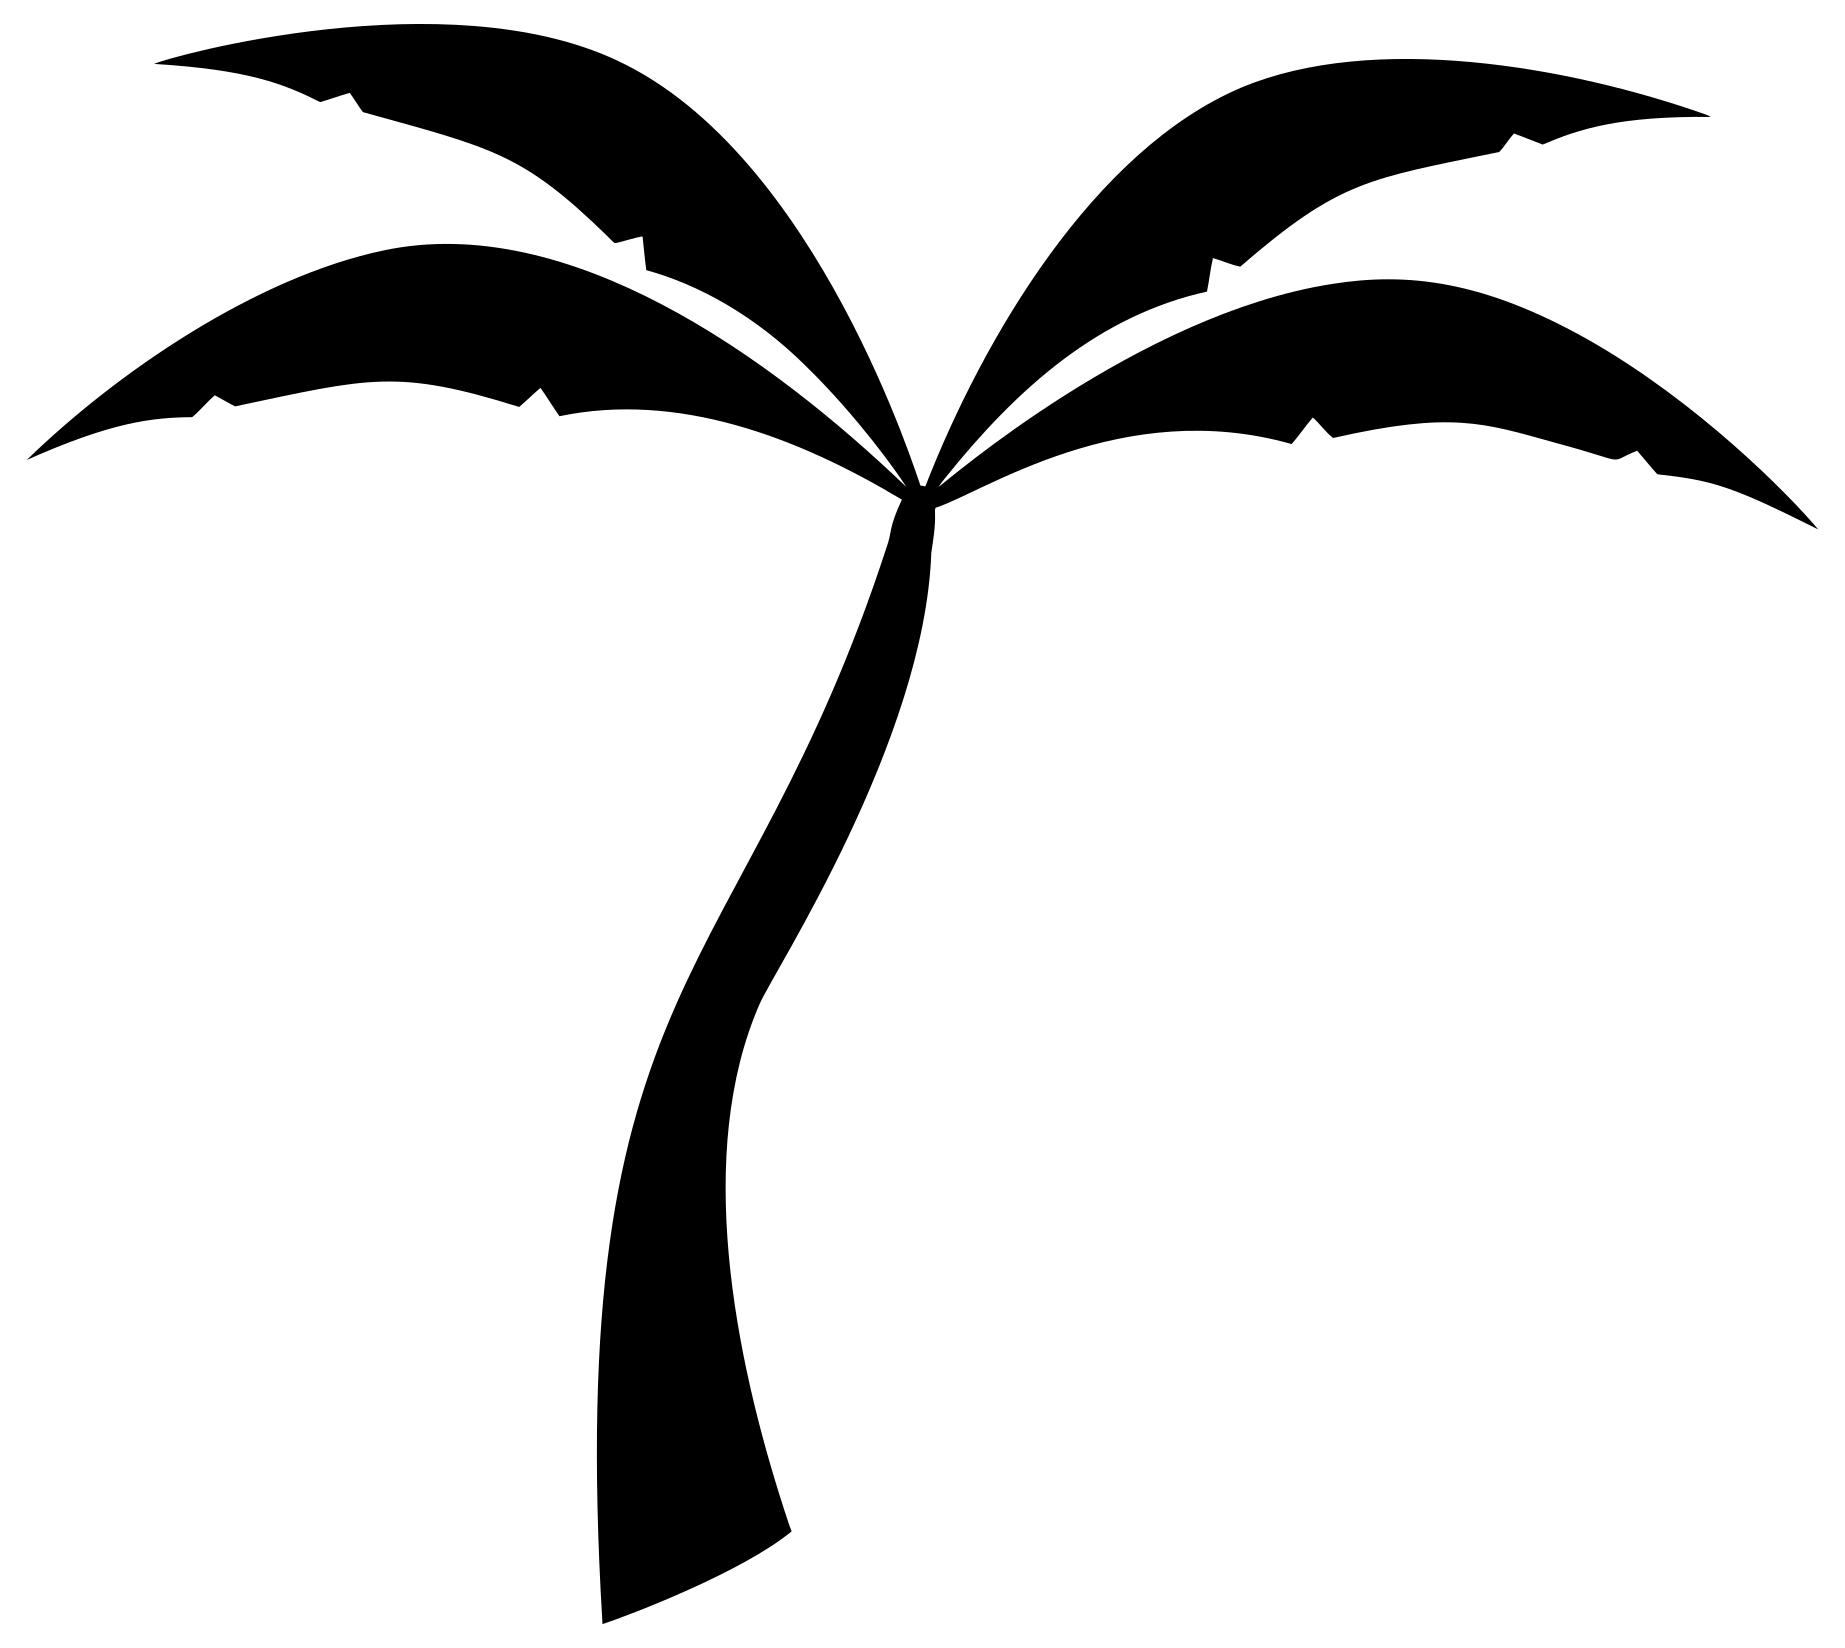 2 clipart palm tree. Silhouette design droide